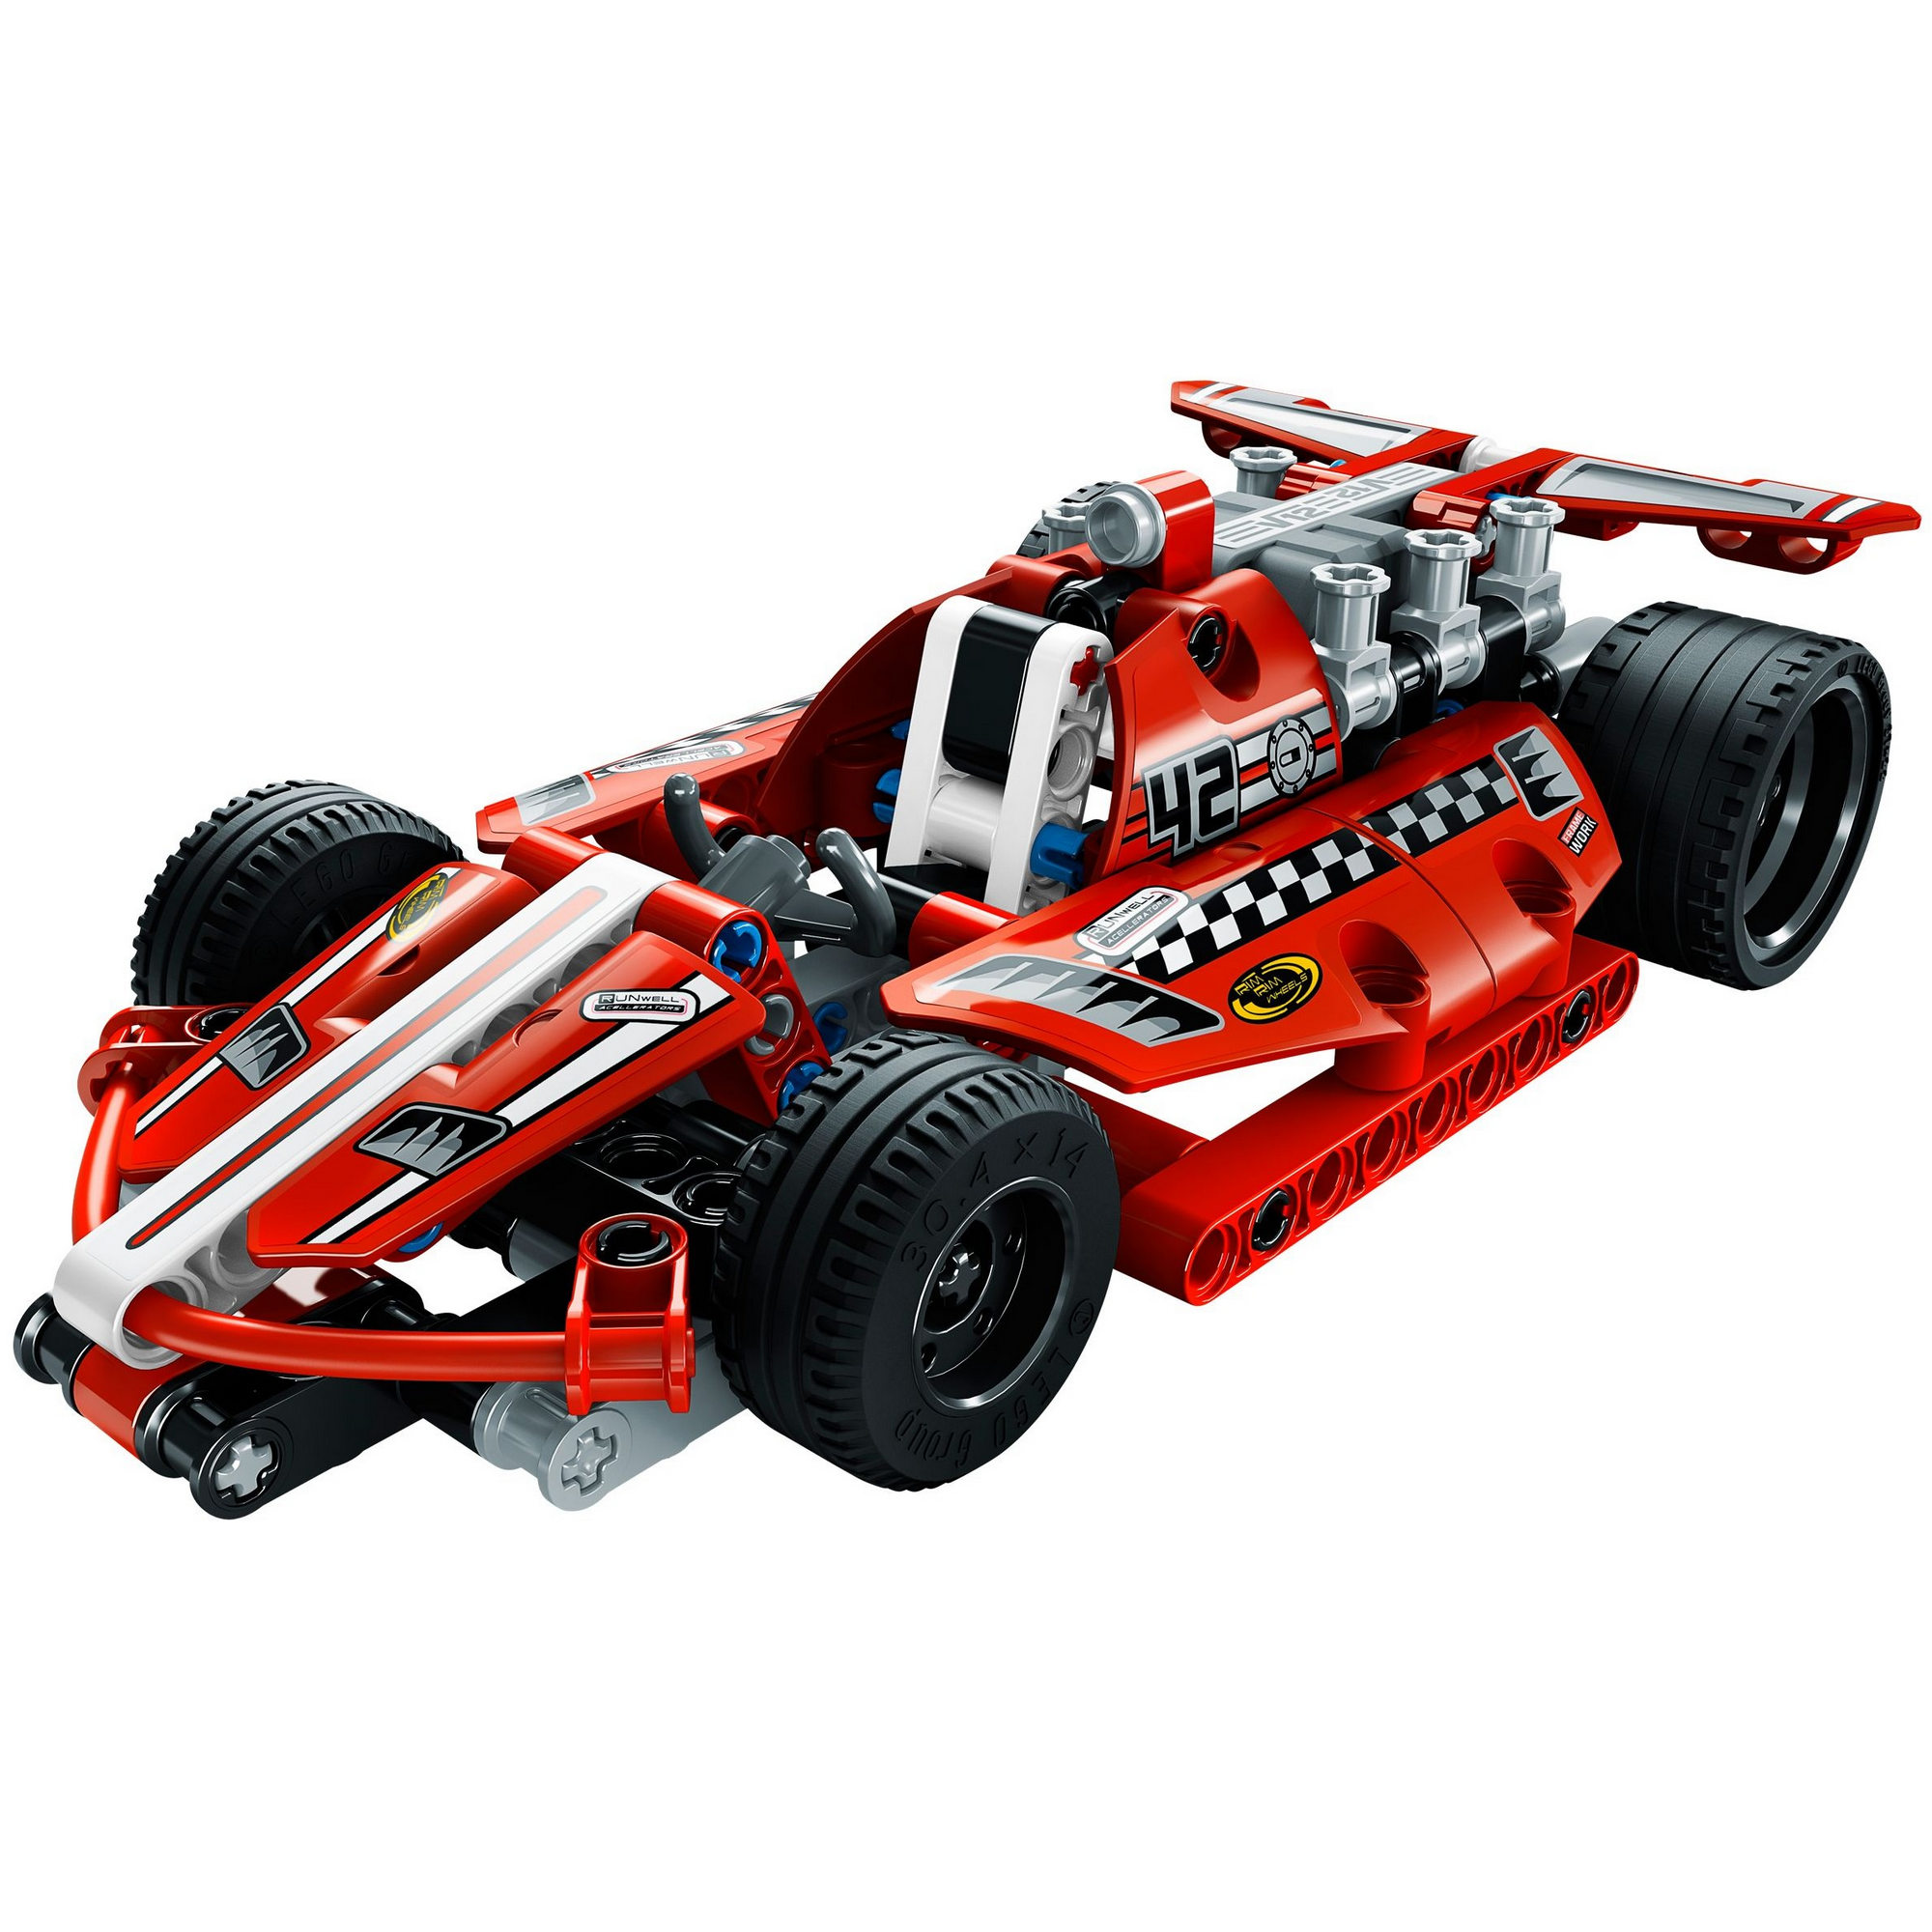 acheter une voiture de course lego technic 42011 sur. Black Bedroom Furniture Sets. Home Design Ideas